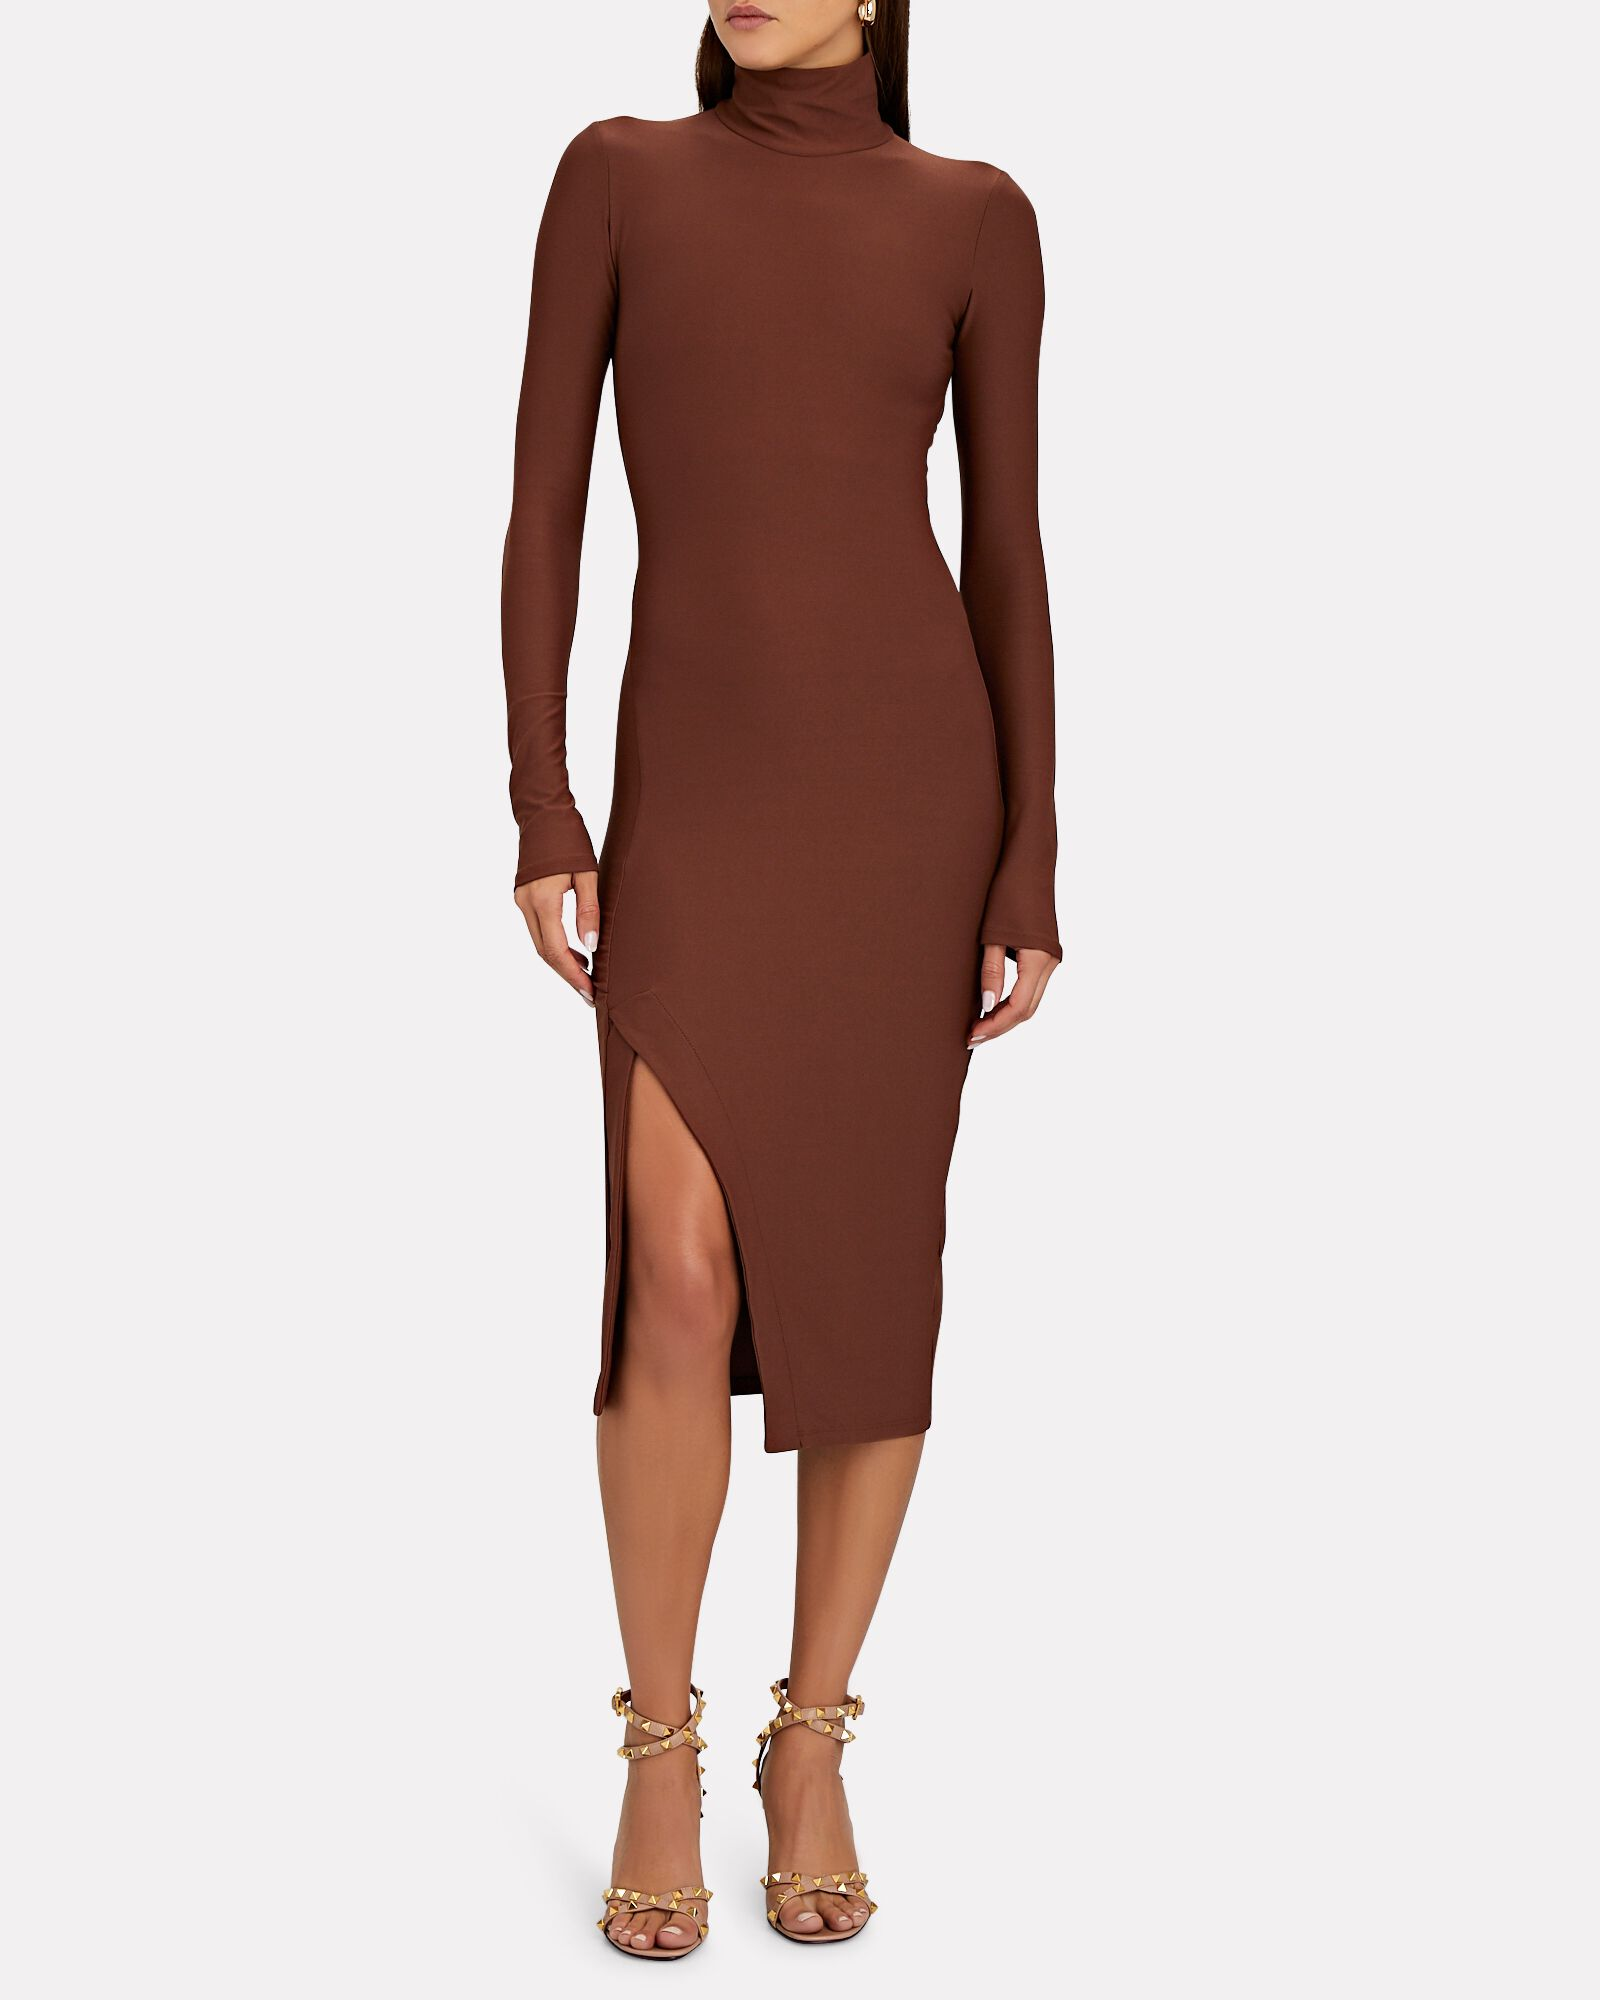 Ardsley Turtleneck Midi Dress, BROWN, hi-res